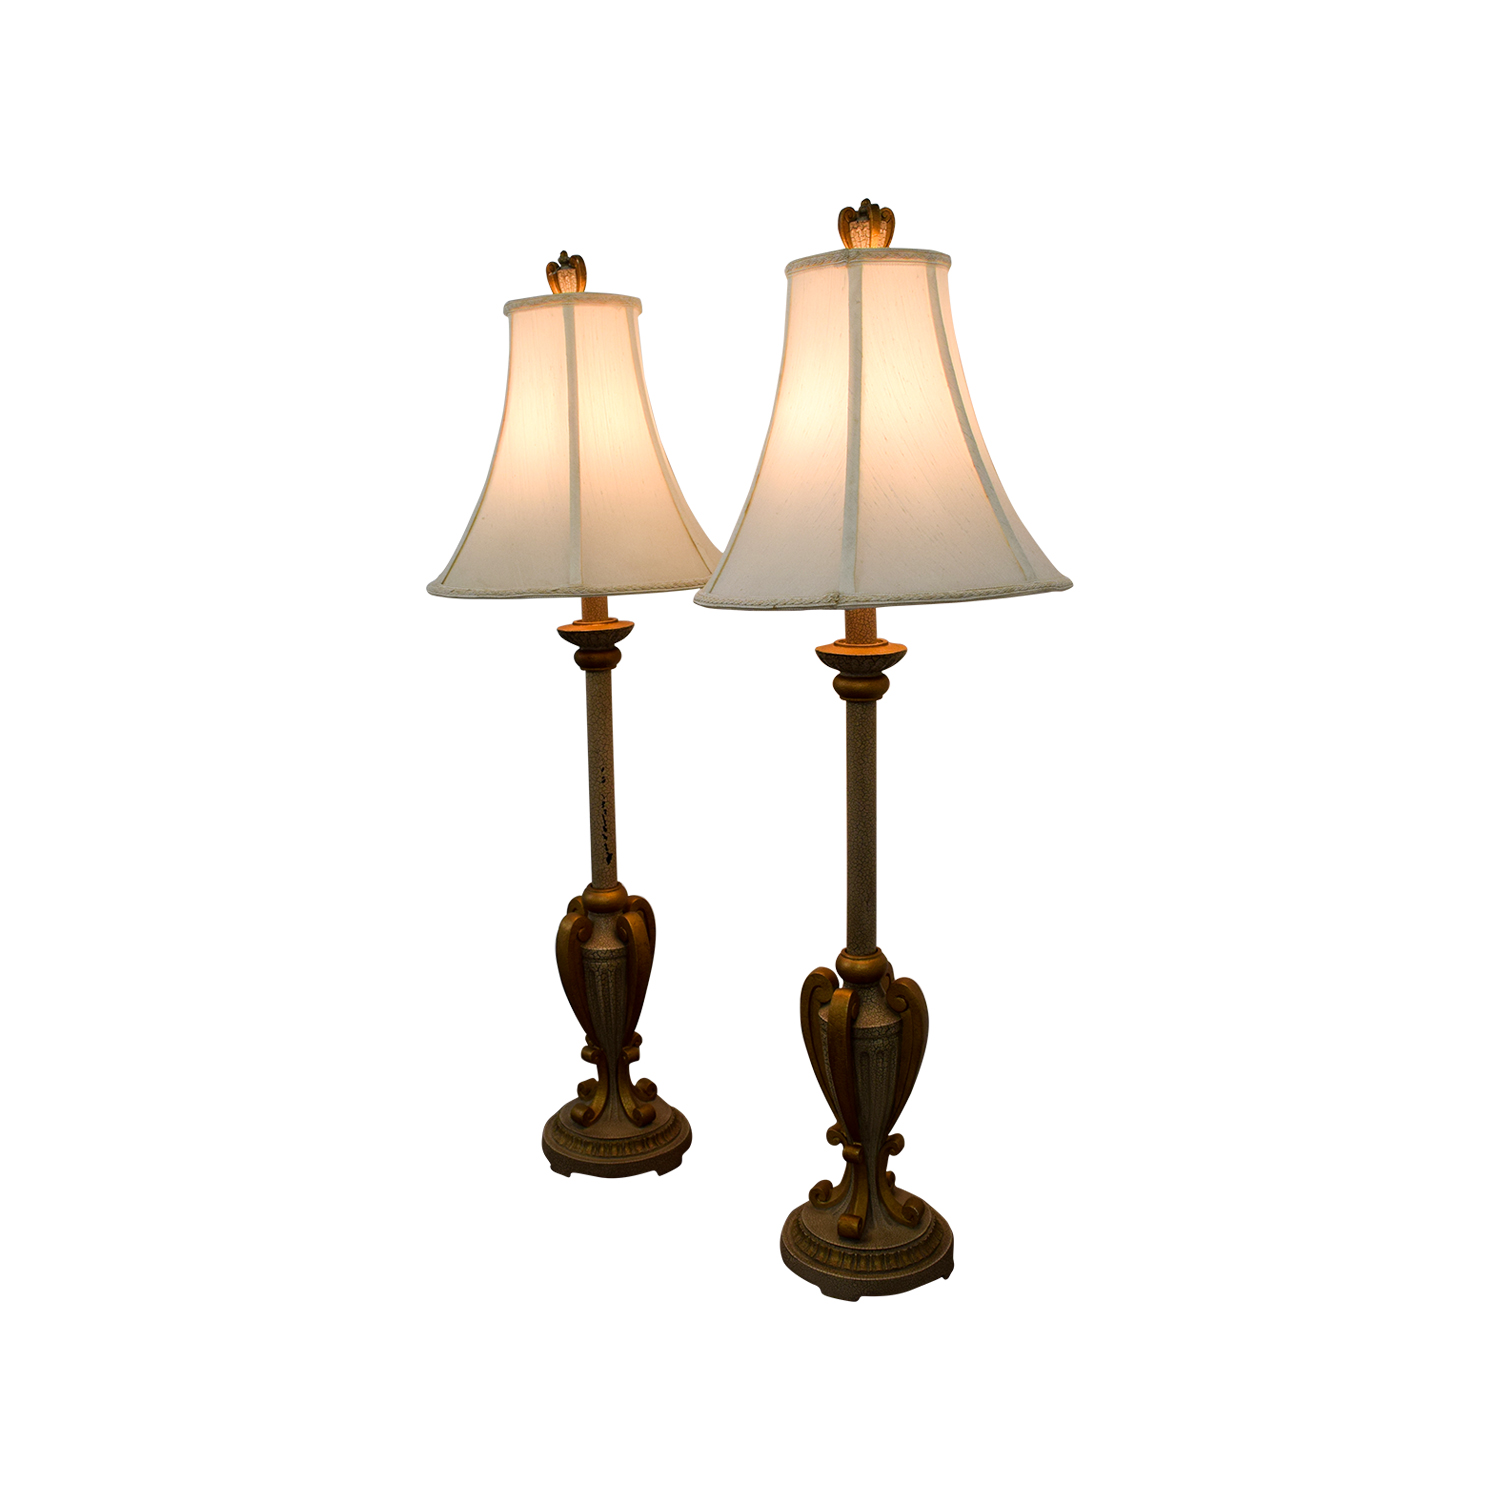 Buffet Gold Lamps used